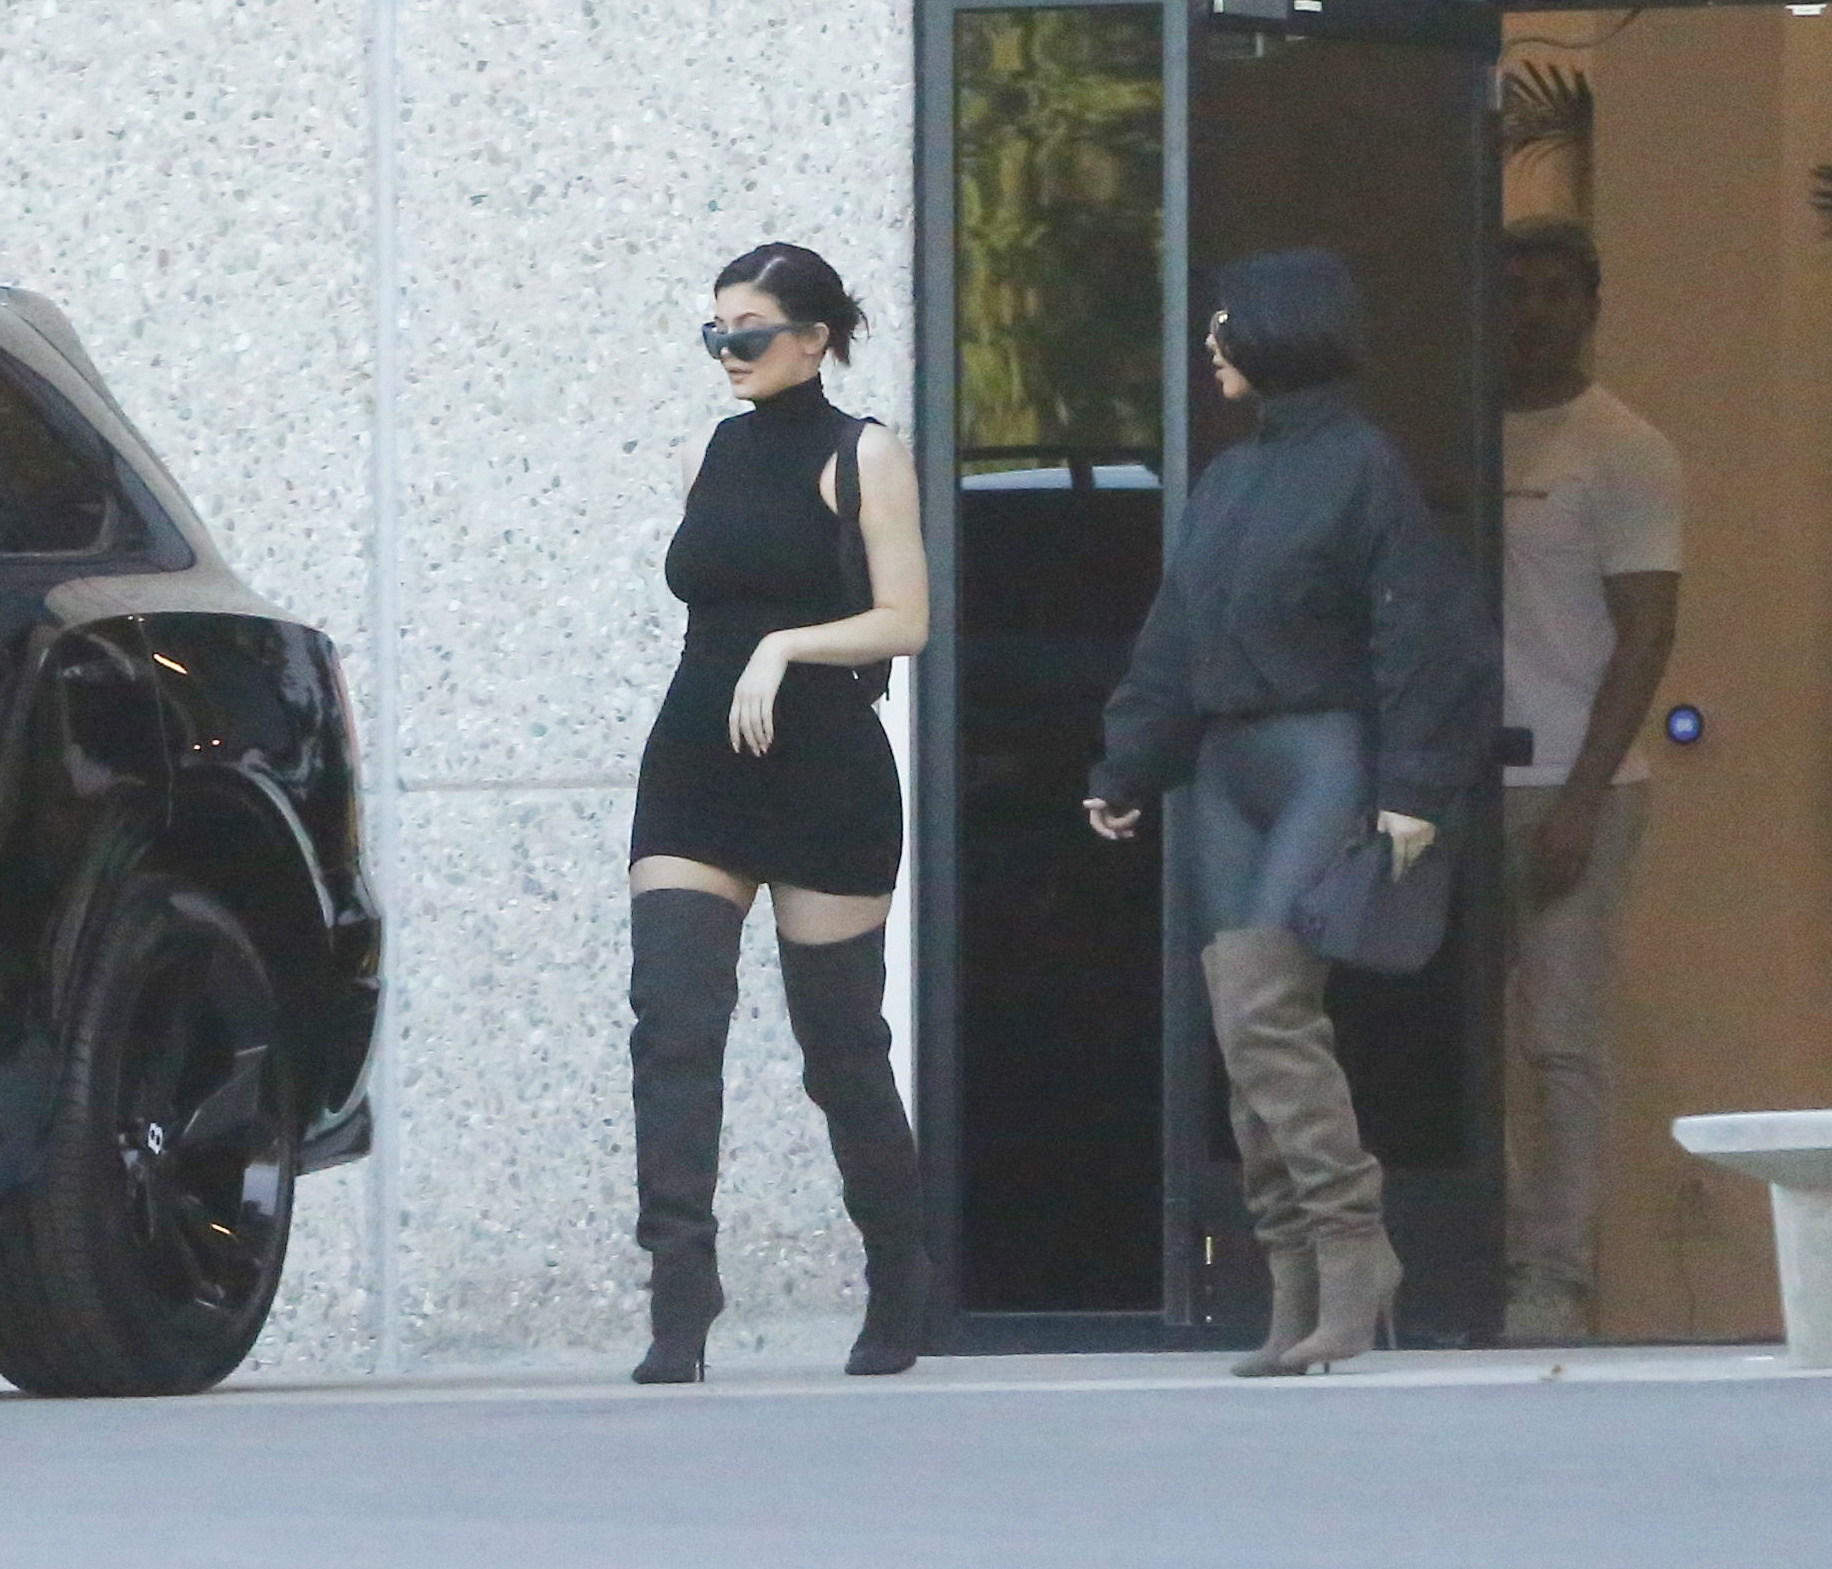 PREMIUM EXCLUSIVE Please contact X17 before any use of these exclusive photos - x17@x17agency.com   WOW! Kim Kardashian and Kylie Jenner are striking in  tight outfits in Calabasas June 11, 2018 X17online.com